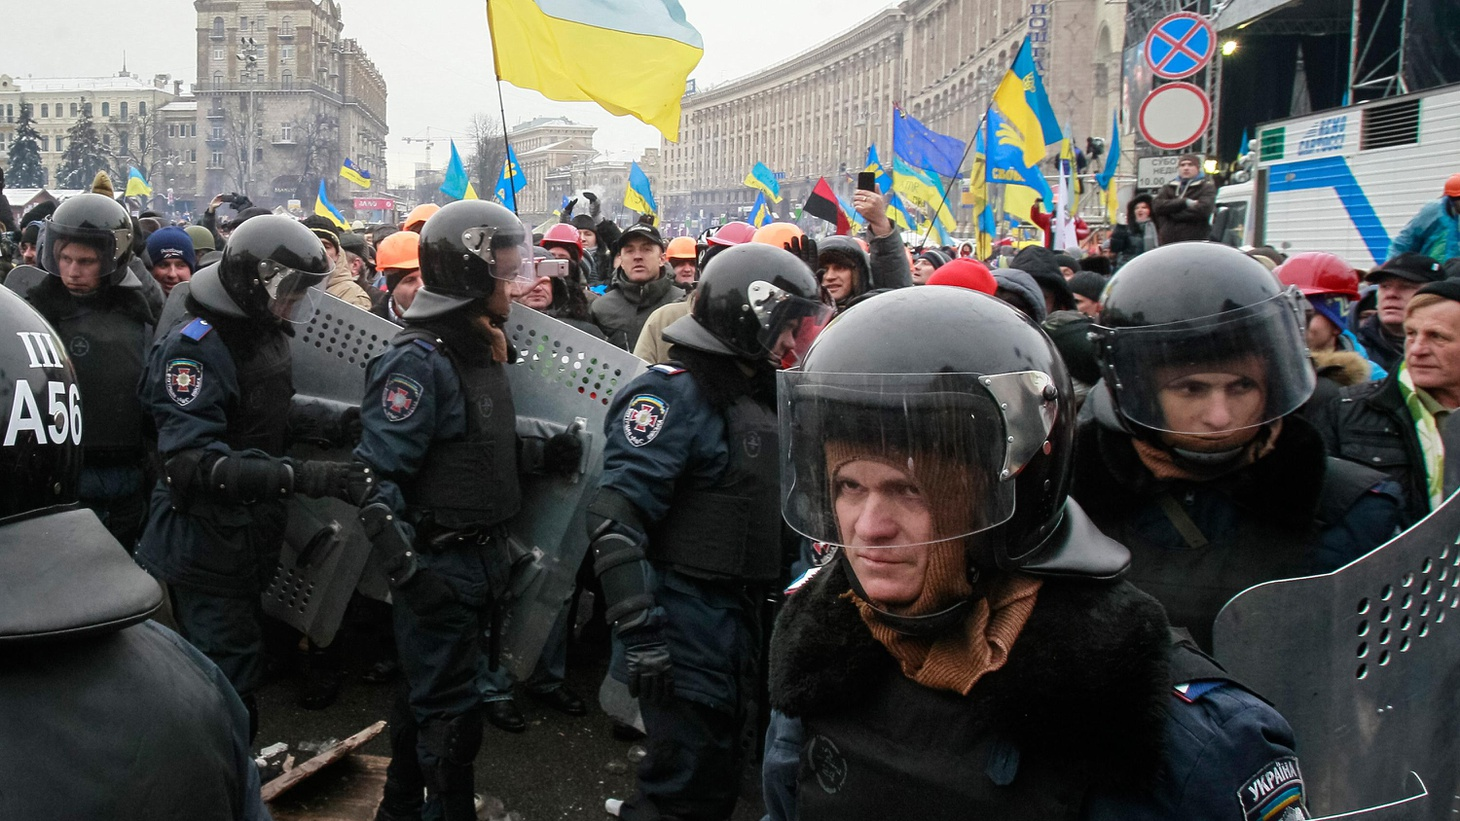 Police in Ukraine used force against peaceful protesters today in what's becoming that country's worst crisis since the Orange Revolution of 2004.